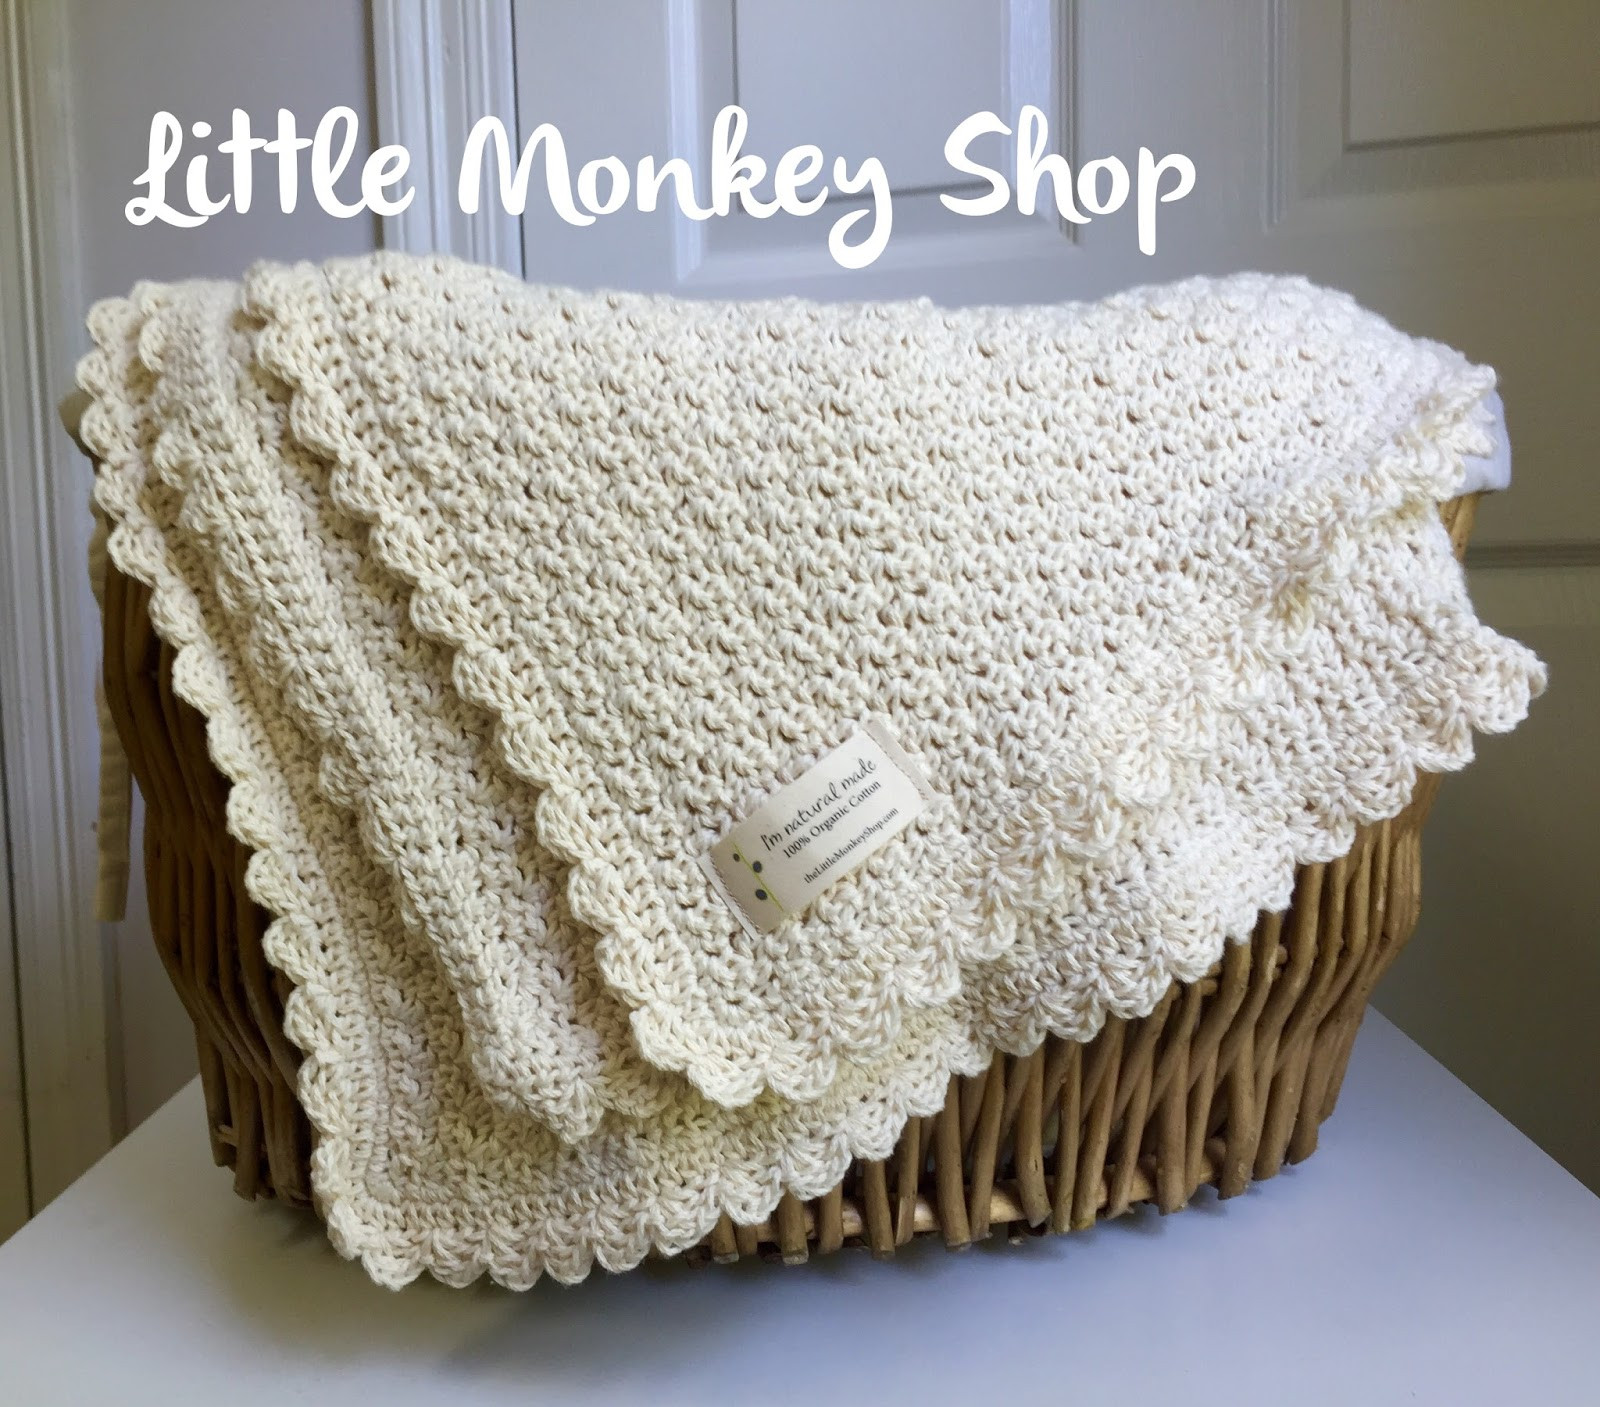 I Love This Cotton Yarn Crochet Patterns New Little Monkey Shop Pure and Simple Baby Blanket A Of Delightful 43 Ideas I Love This Cotton Yarn Crochet Patterns